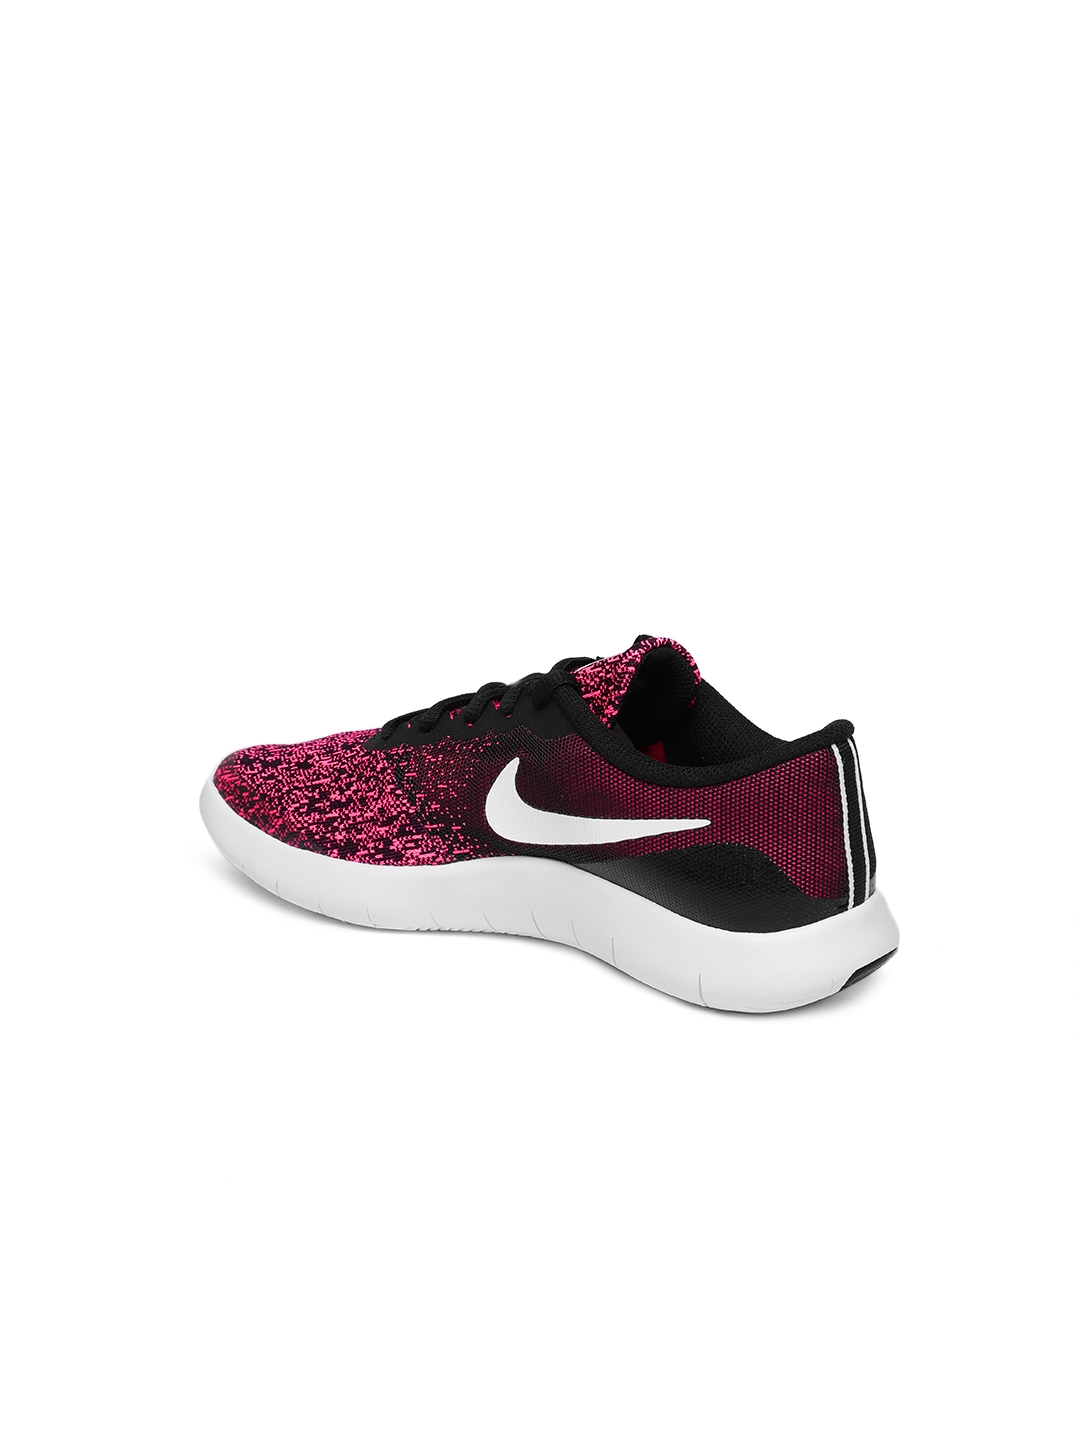 7aabf11686195 Buy Nike Girls Black   Pink Printed Flex Contact Running Shoes ...